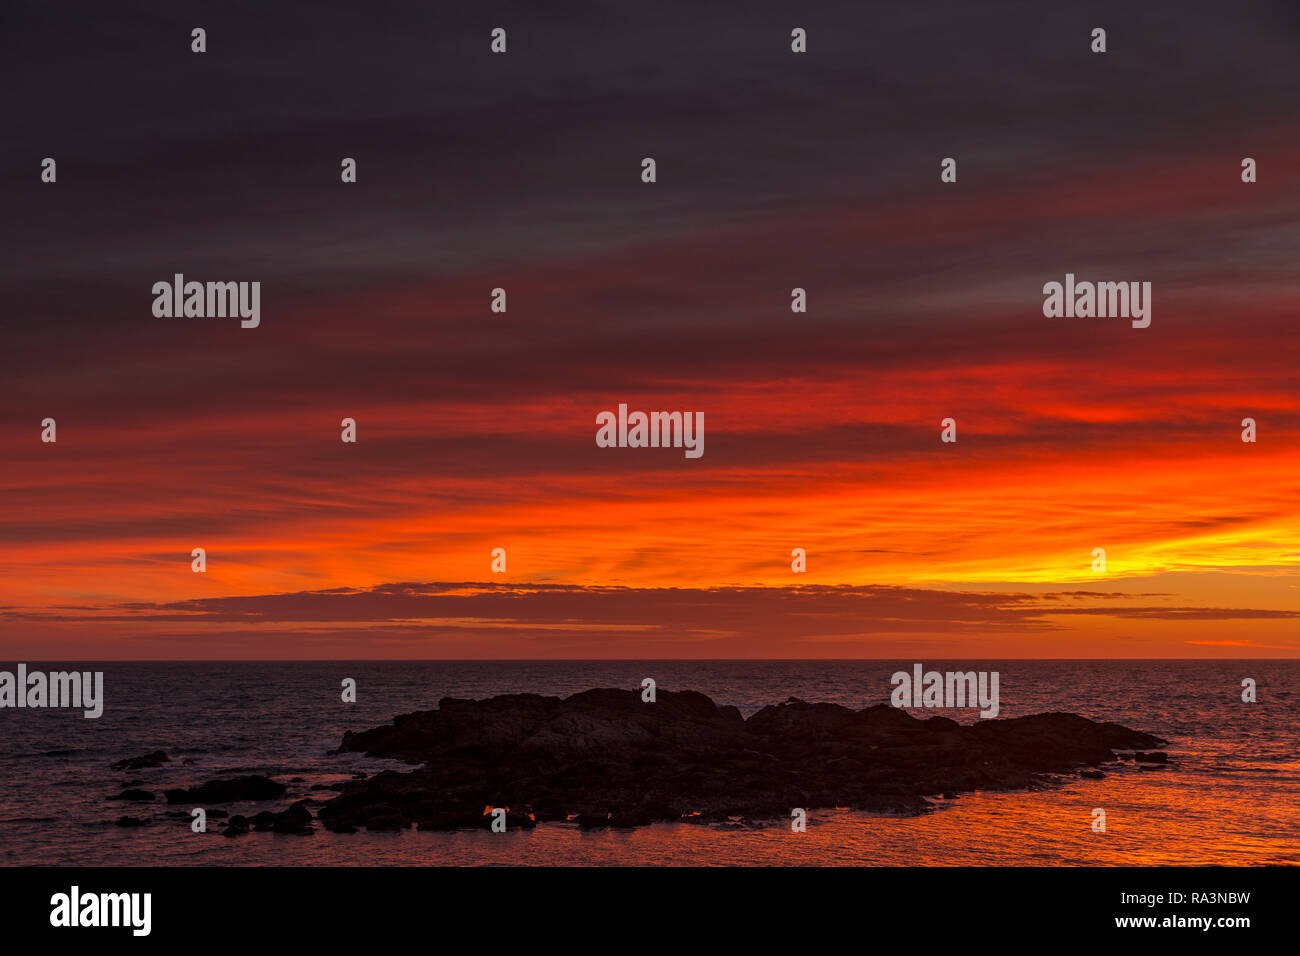 Sunset over the sea from Trearddur on the coast of Anglesey, North Wales - Stock Image